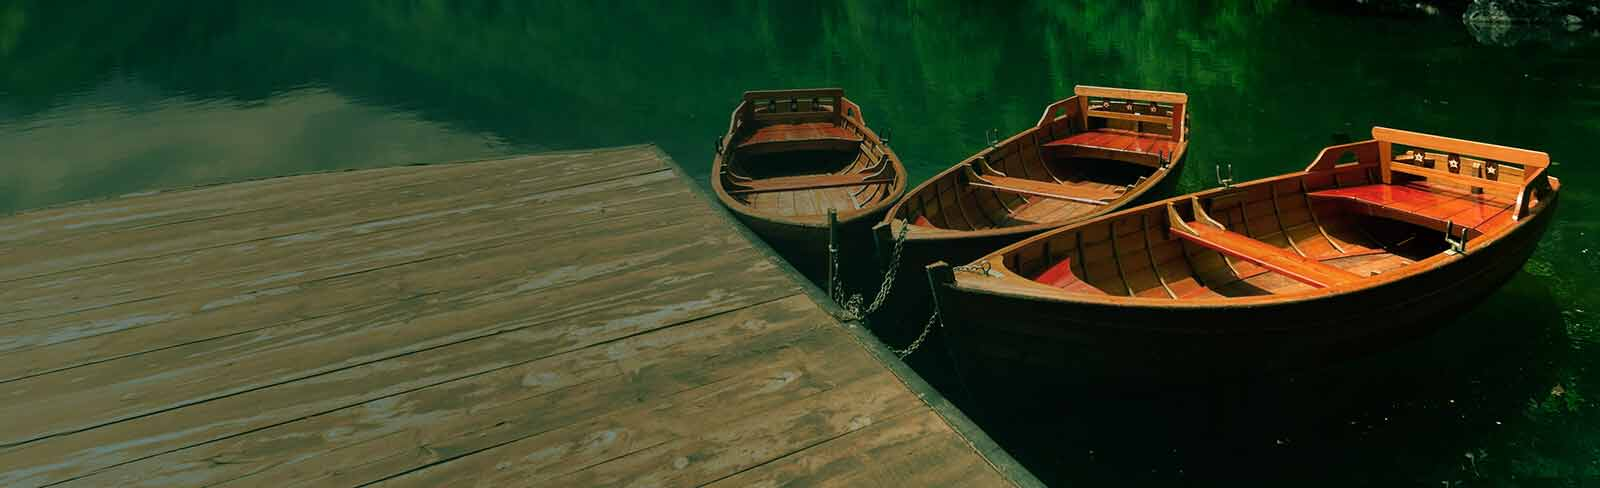 Boats on lake (desktop)